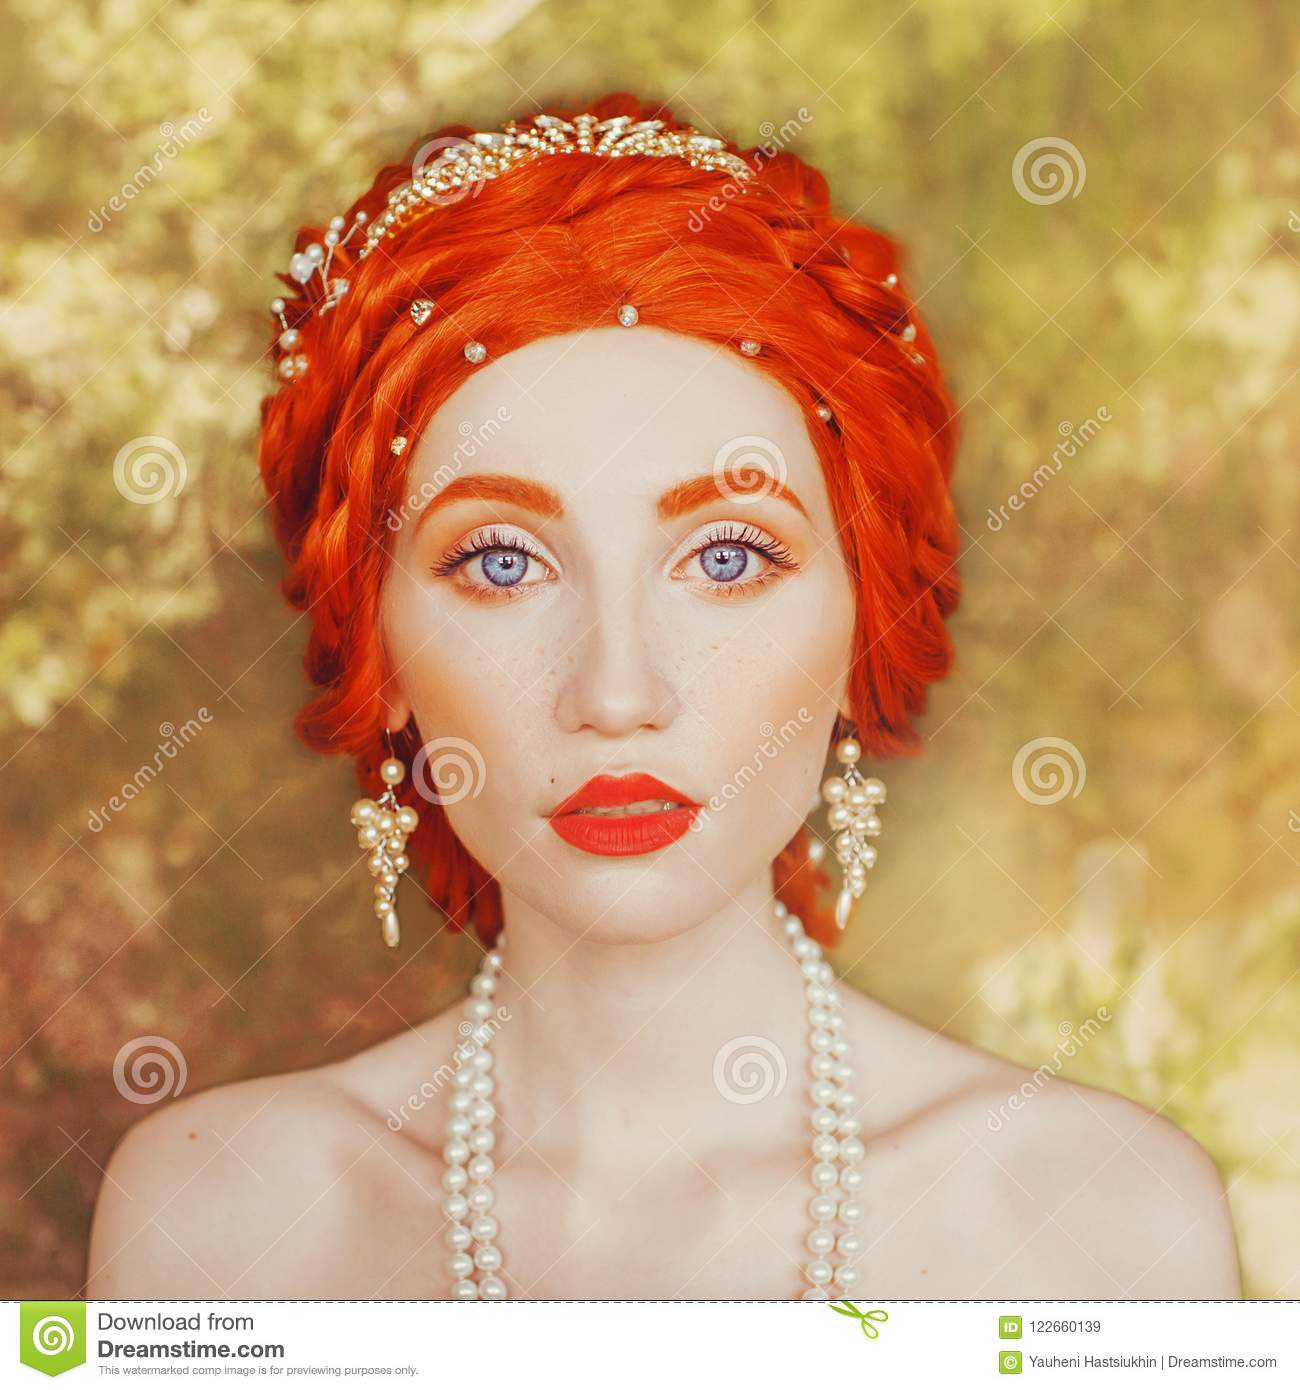 d81fe4eb0d7 Young victorian redhead princess with freckles in castle. Fabulous portrait  of rococo queen against backdrop